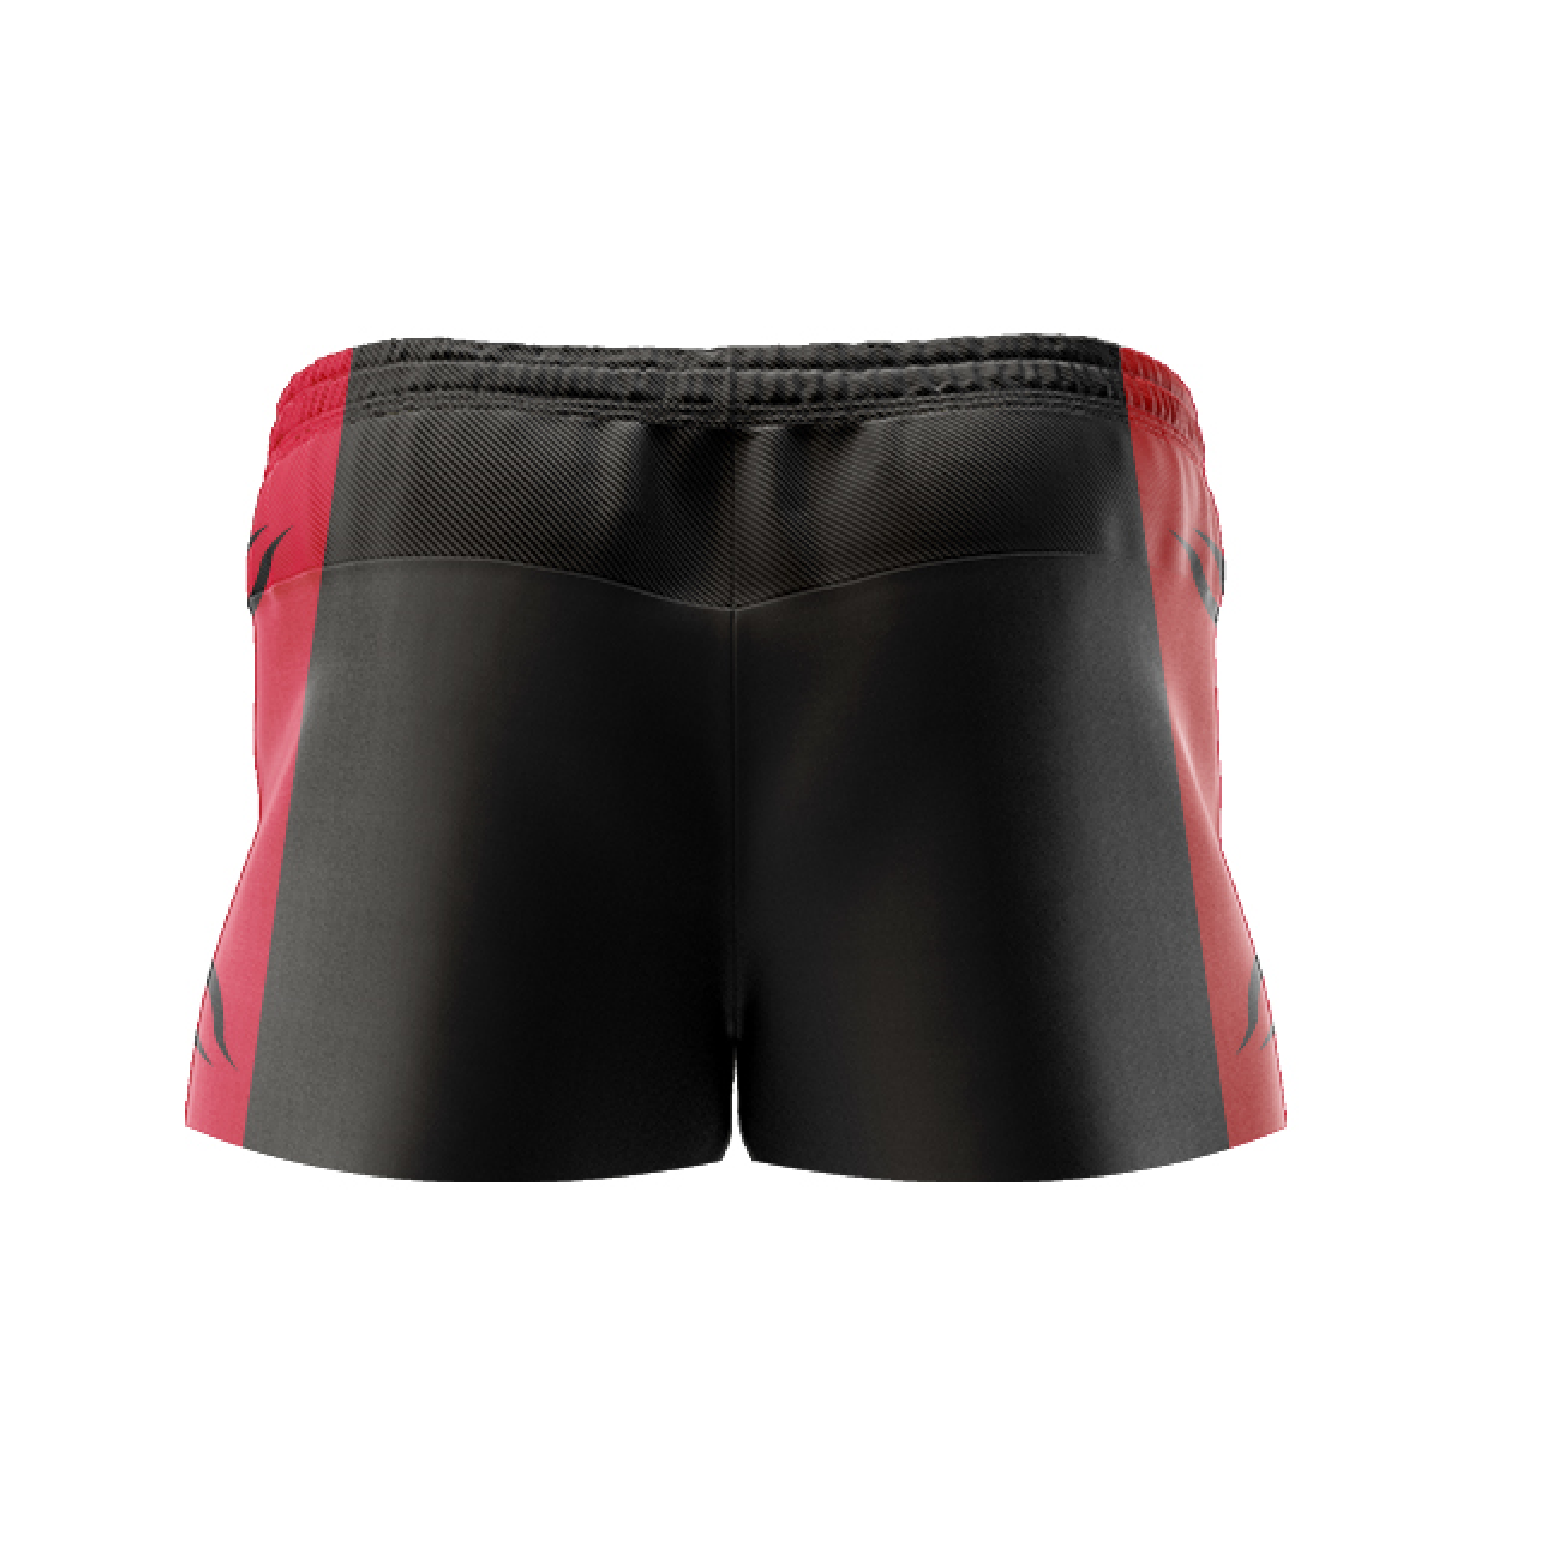 TRC Touch Shorts - Red Side Panel